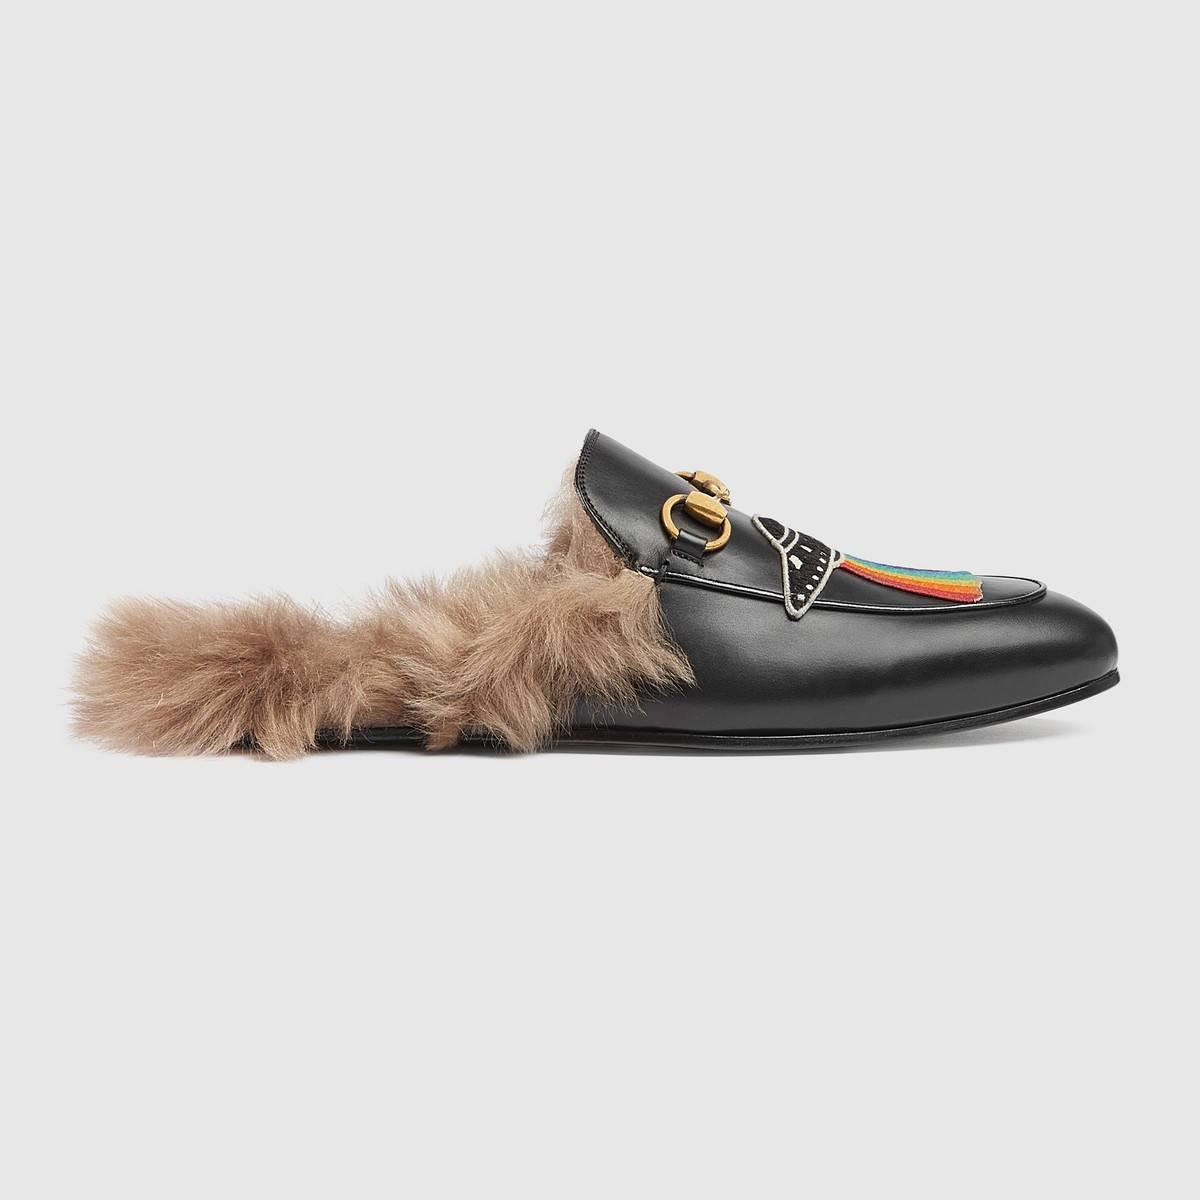 Gucci Leathers Princetown Leather Slipper With Appliqués - Black Leather